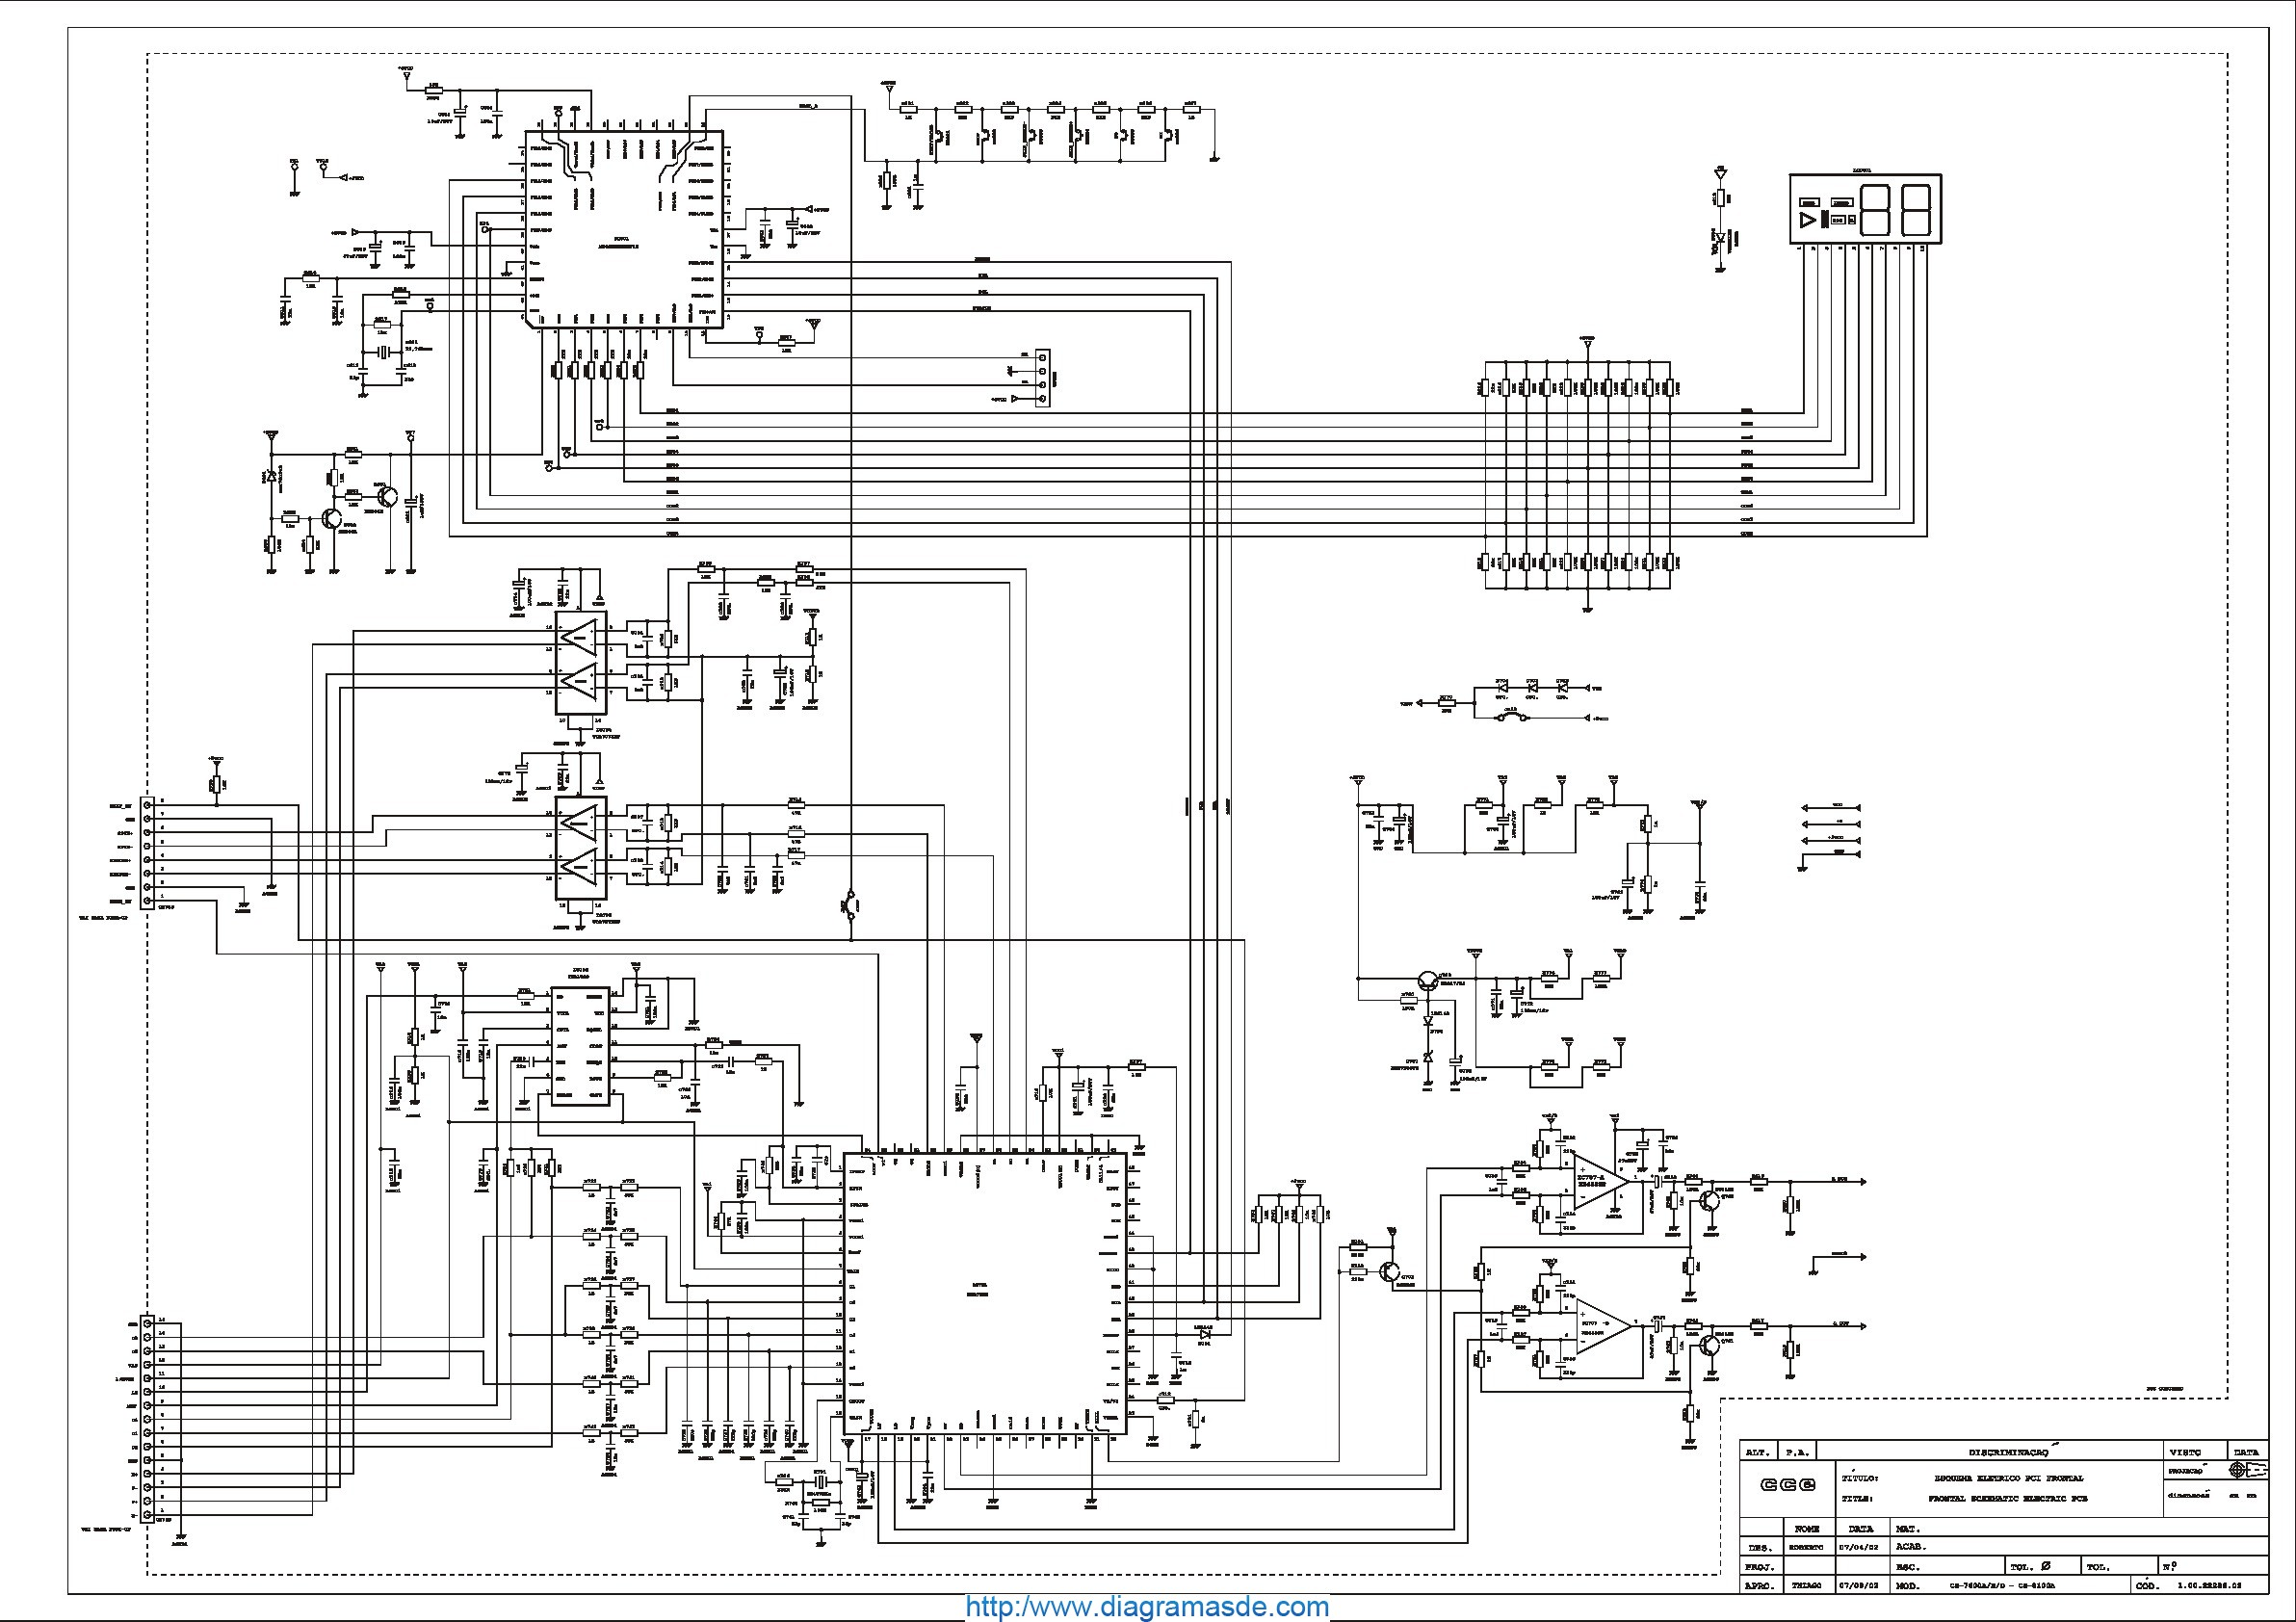 CCE Audio CS-7600D Diagrama Esquematico.pdf